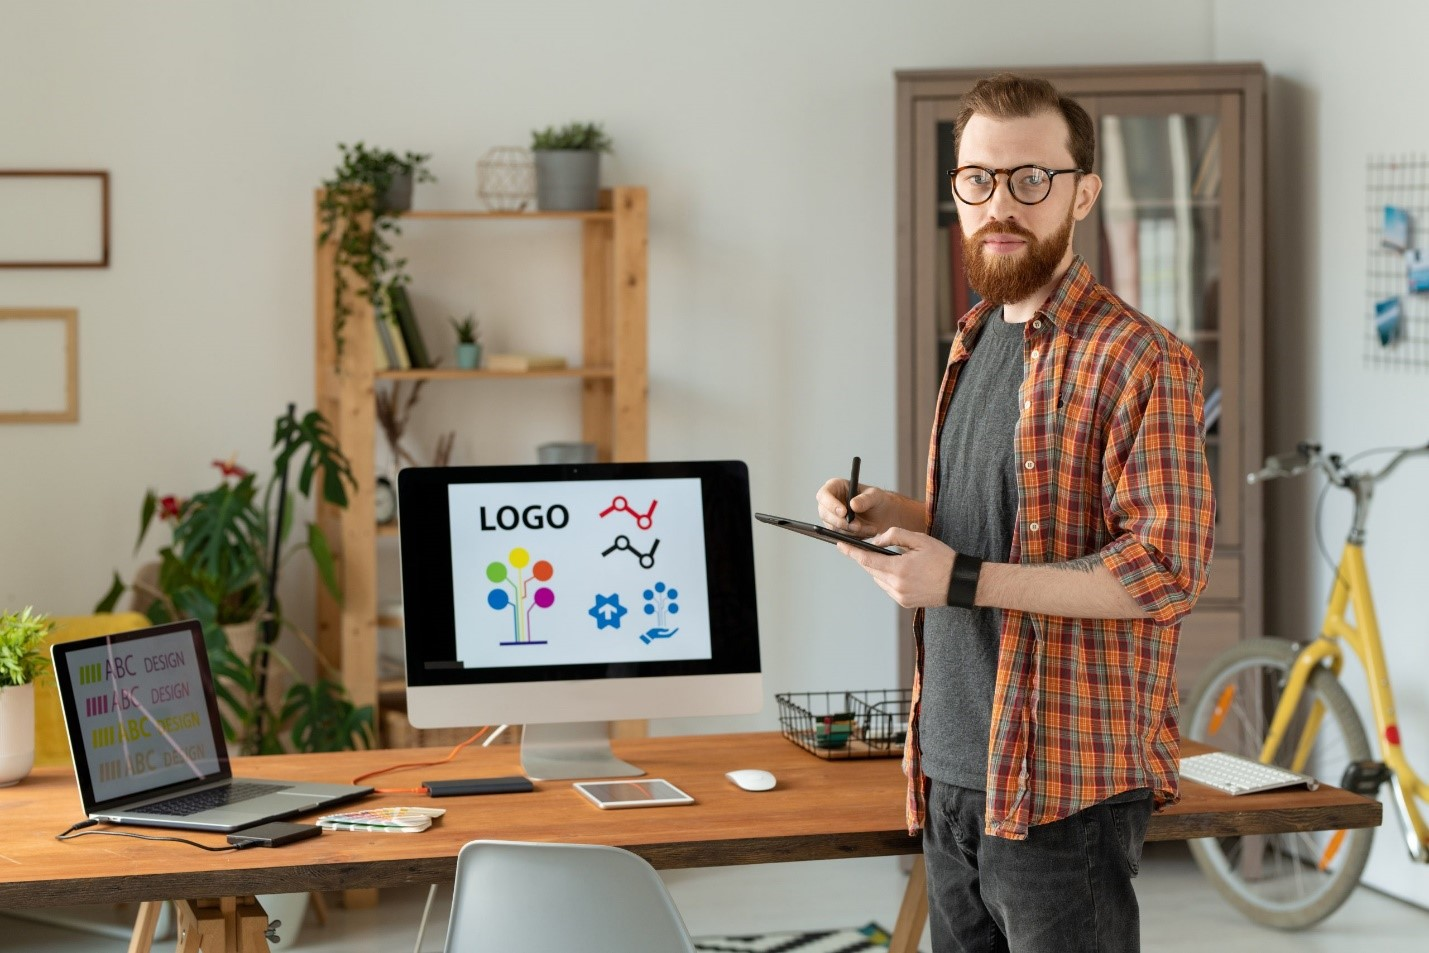 A designer working on branding in order to incorporate recommerce solutions.